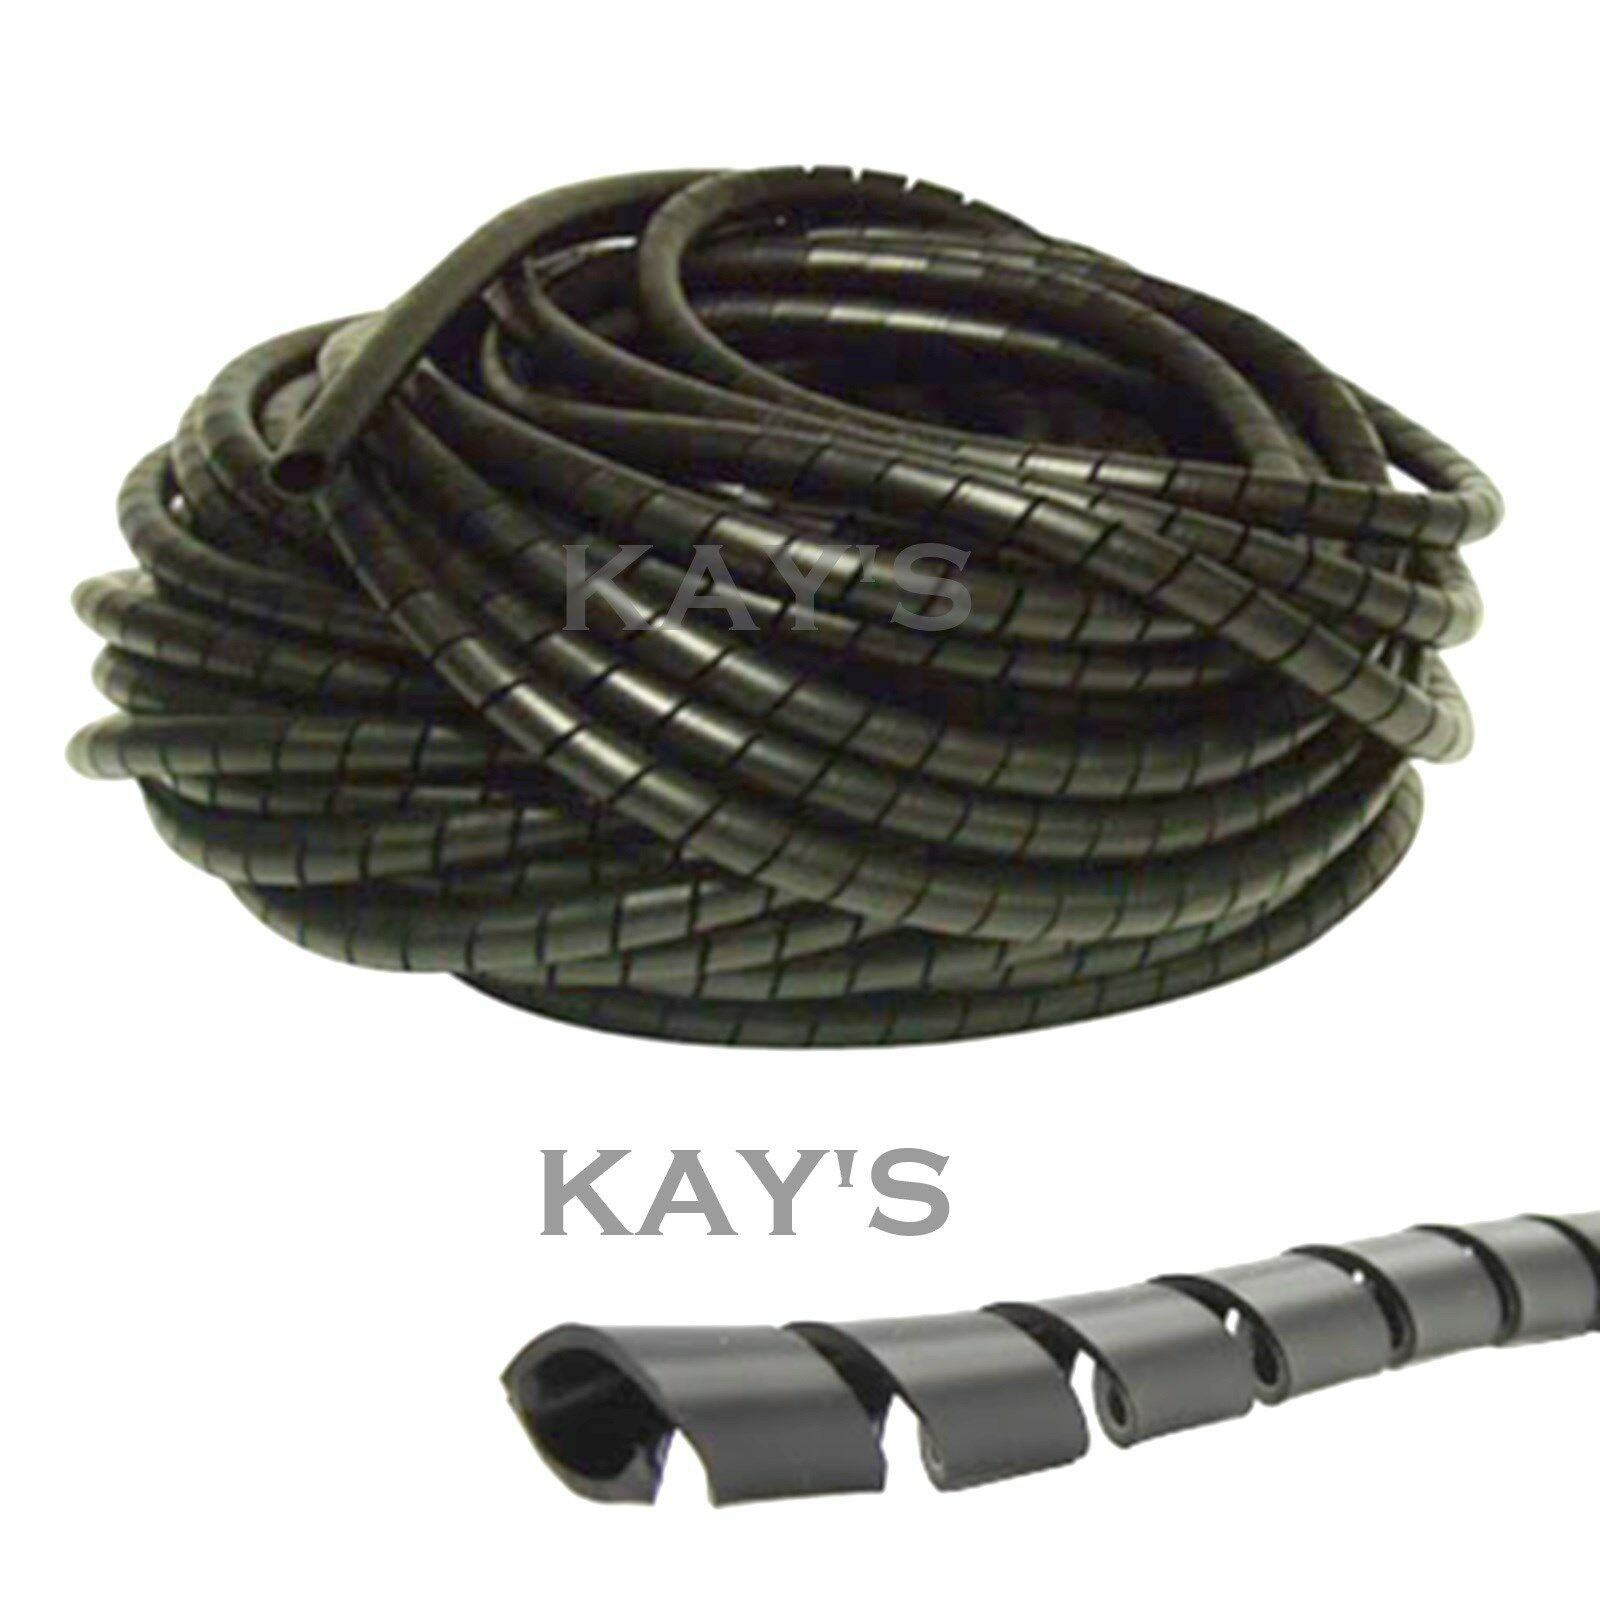 SPIRAL CABLE WRAP Tidy Hide Banding Loom ~ Pc,tv,home Cinema,wire ...